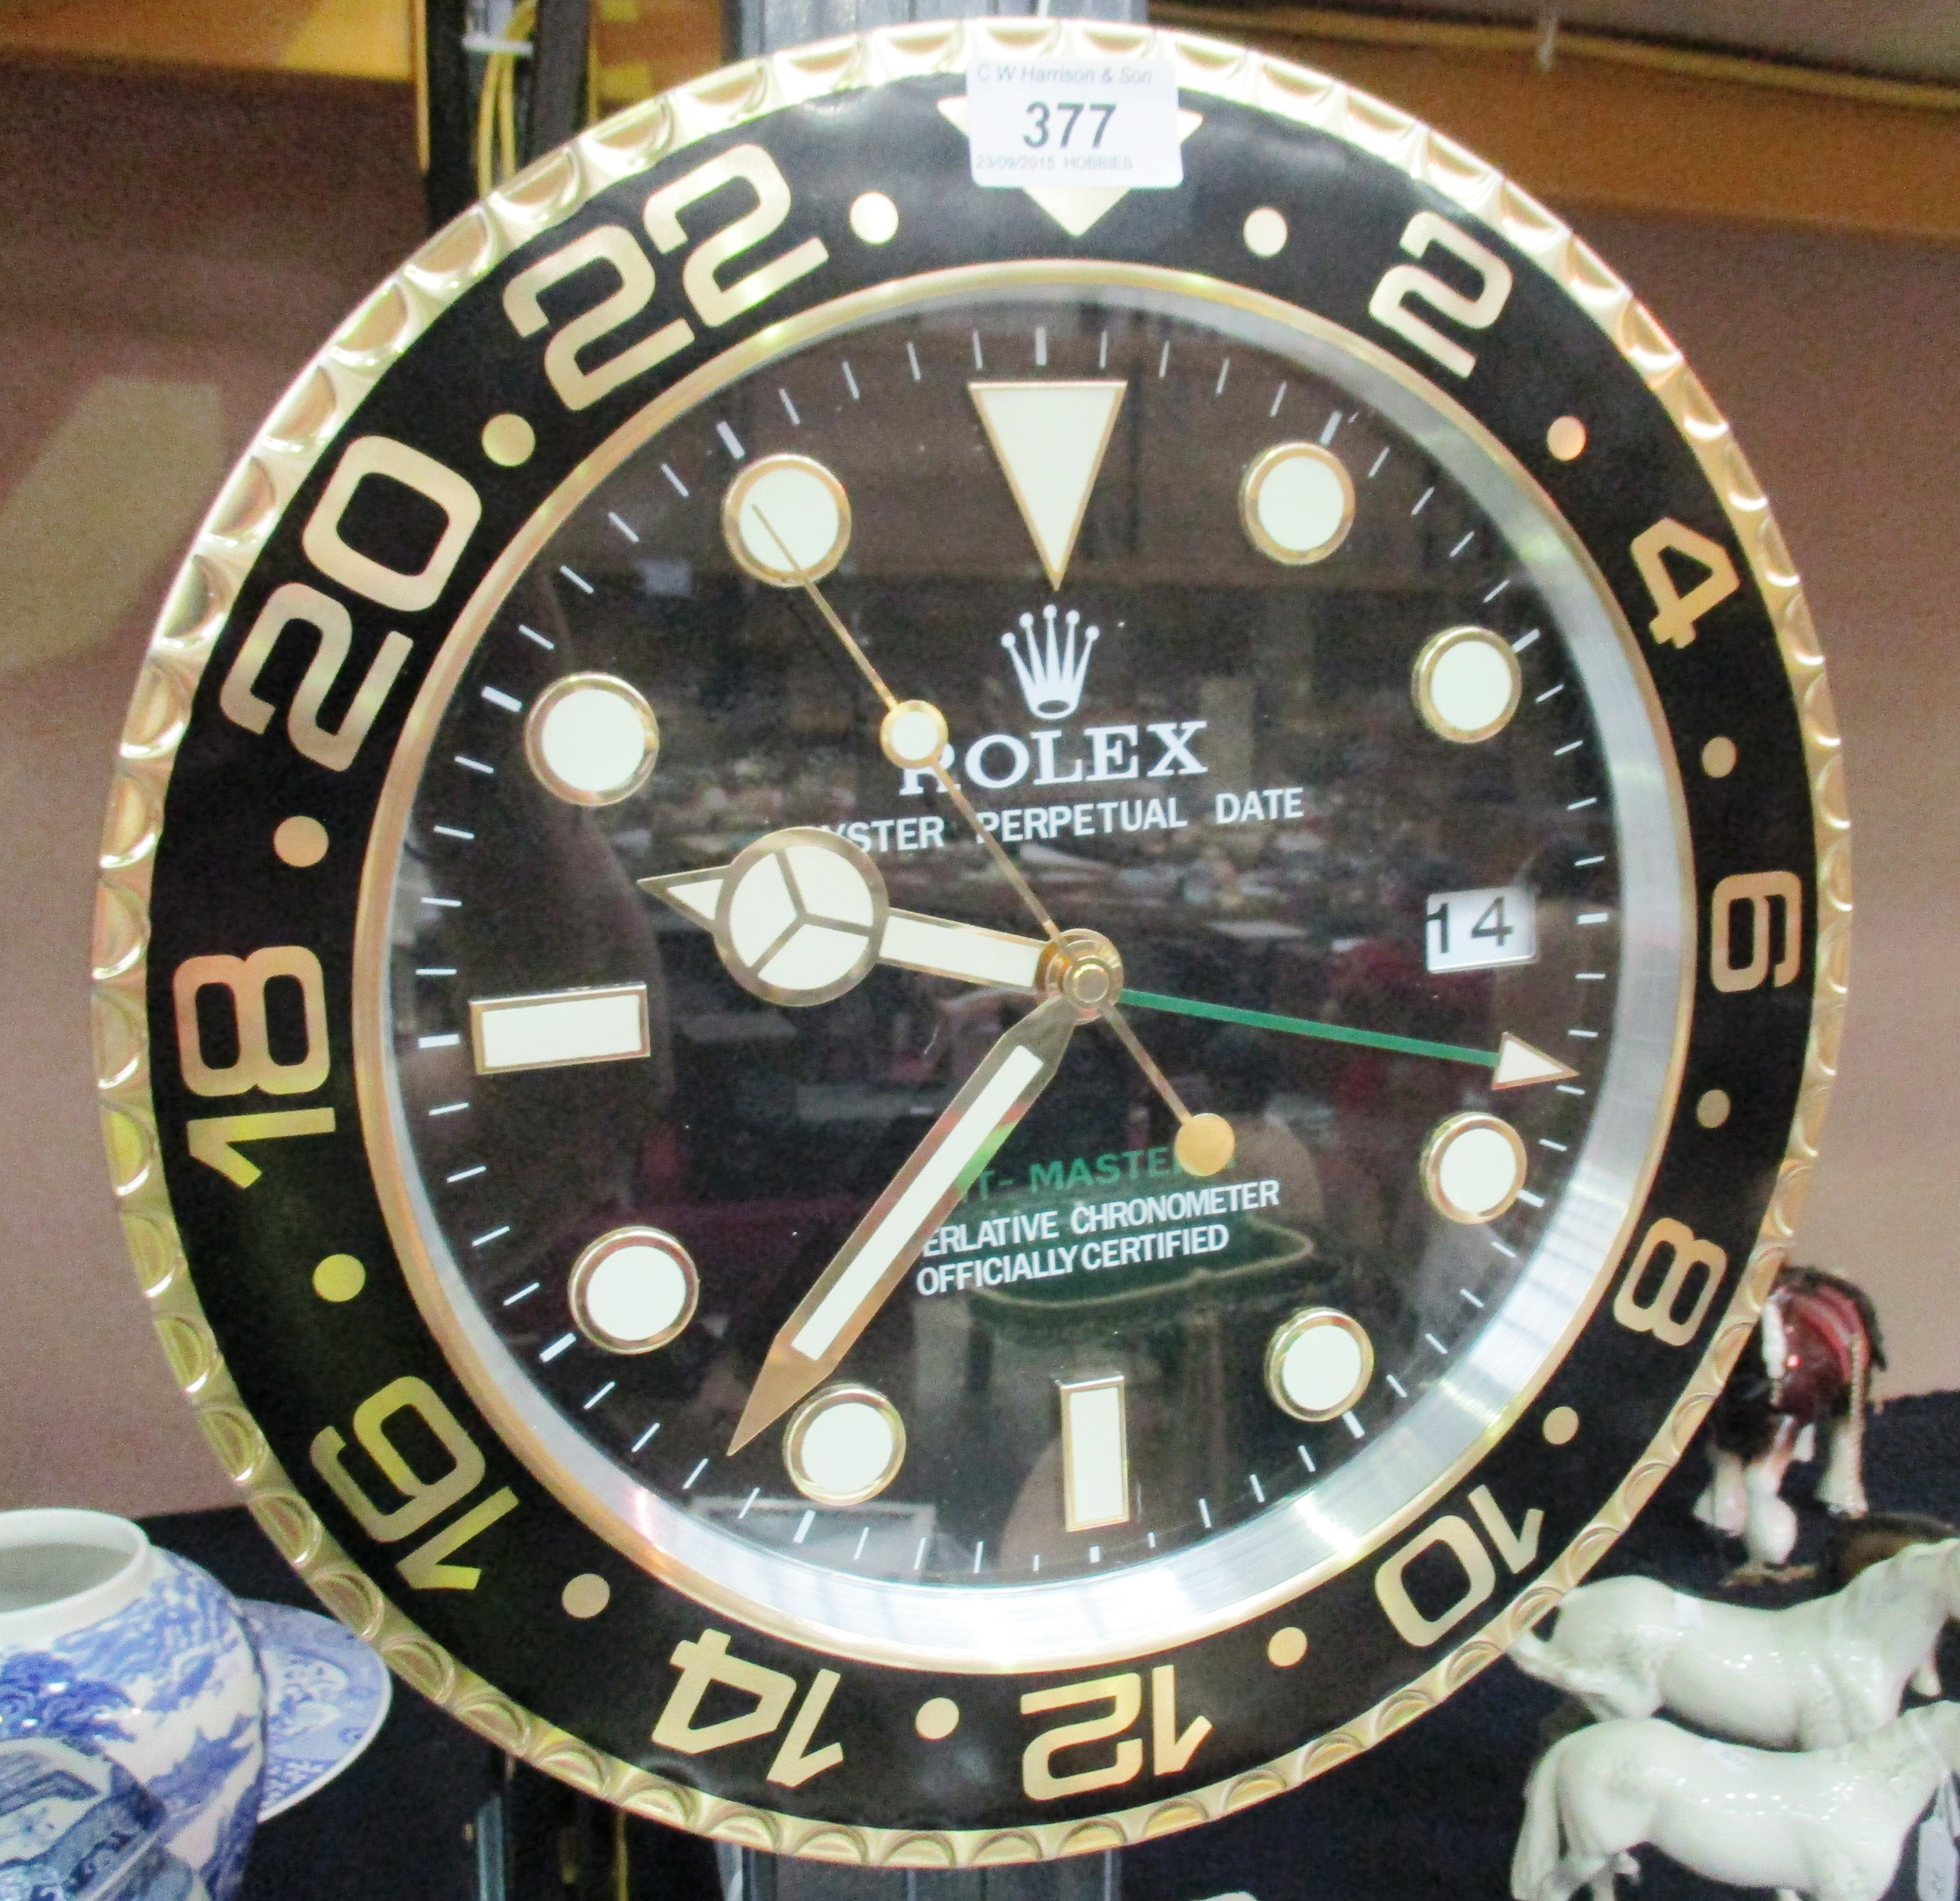 Replica wall clock images home wall decoration ideas rolex milgauss wall clock images home wall decoration ideas replica wall clock images home wall decoration amipublicfo Images